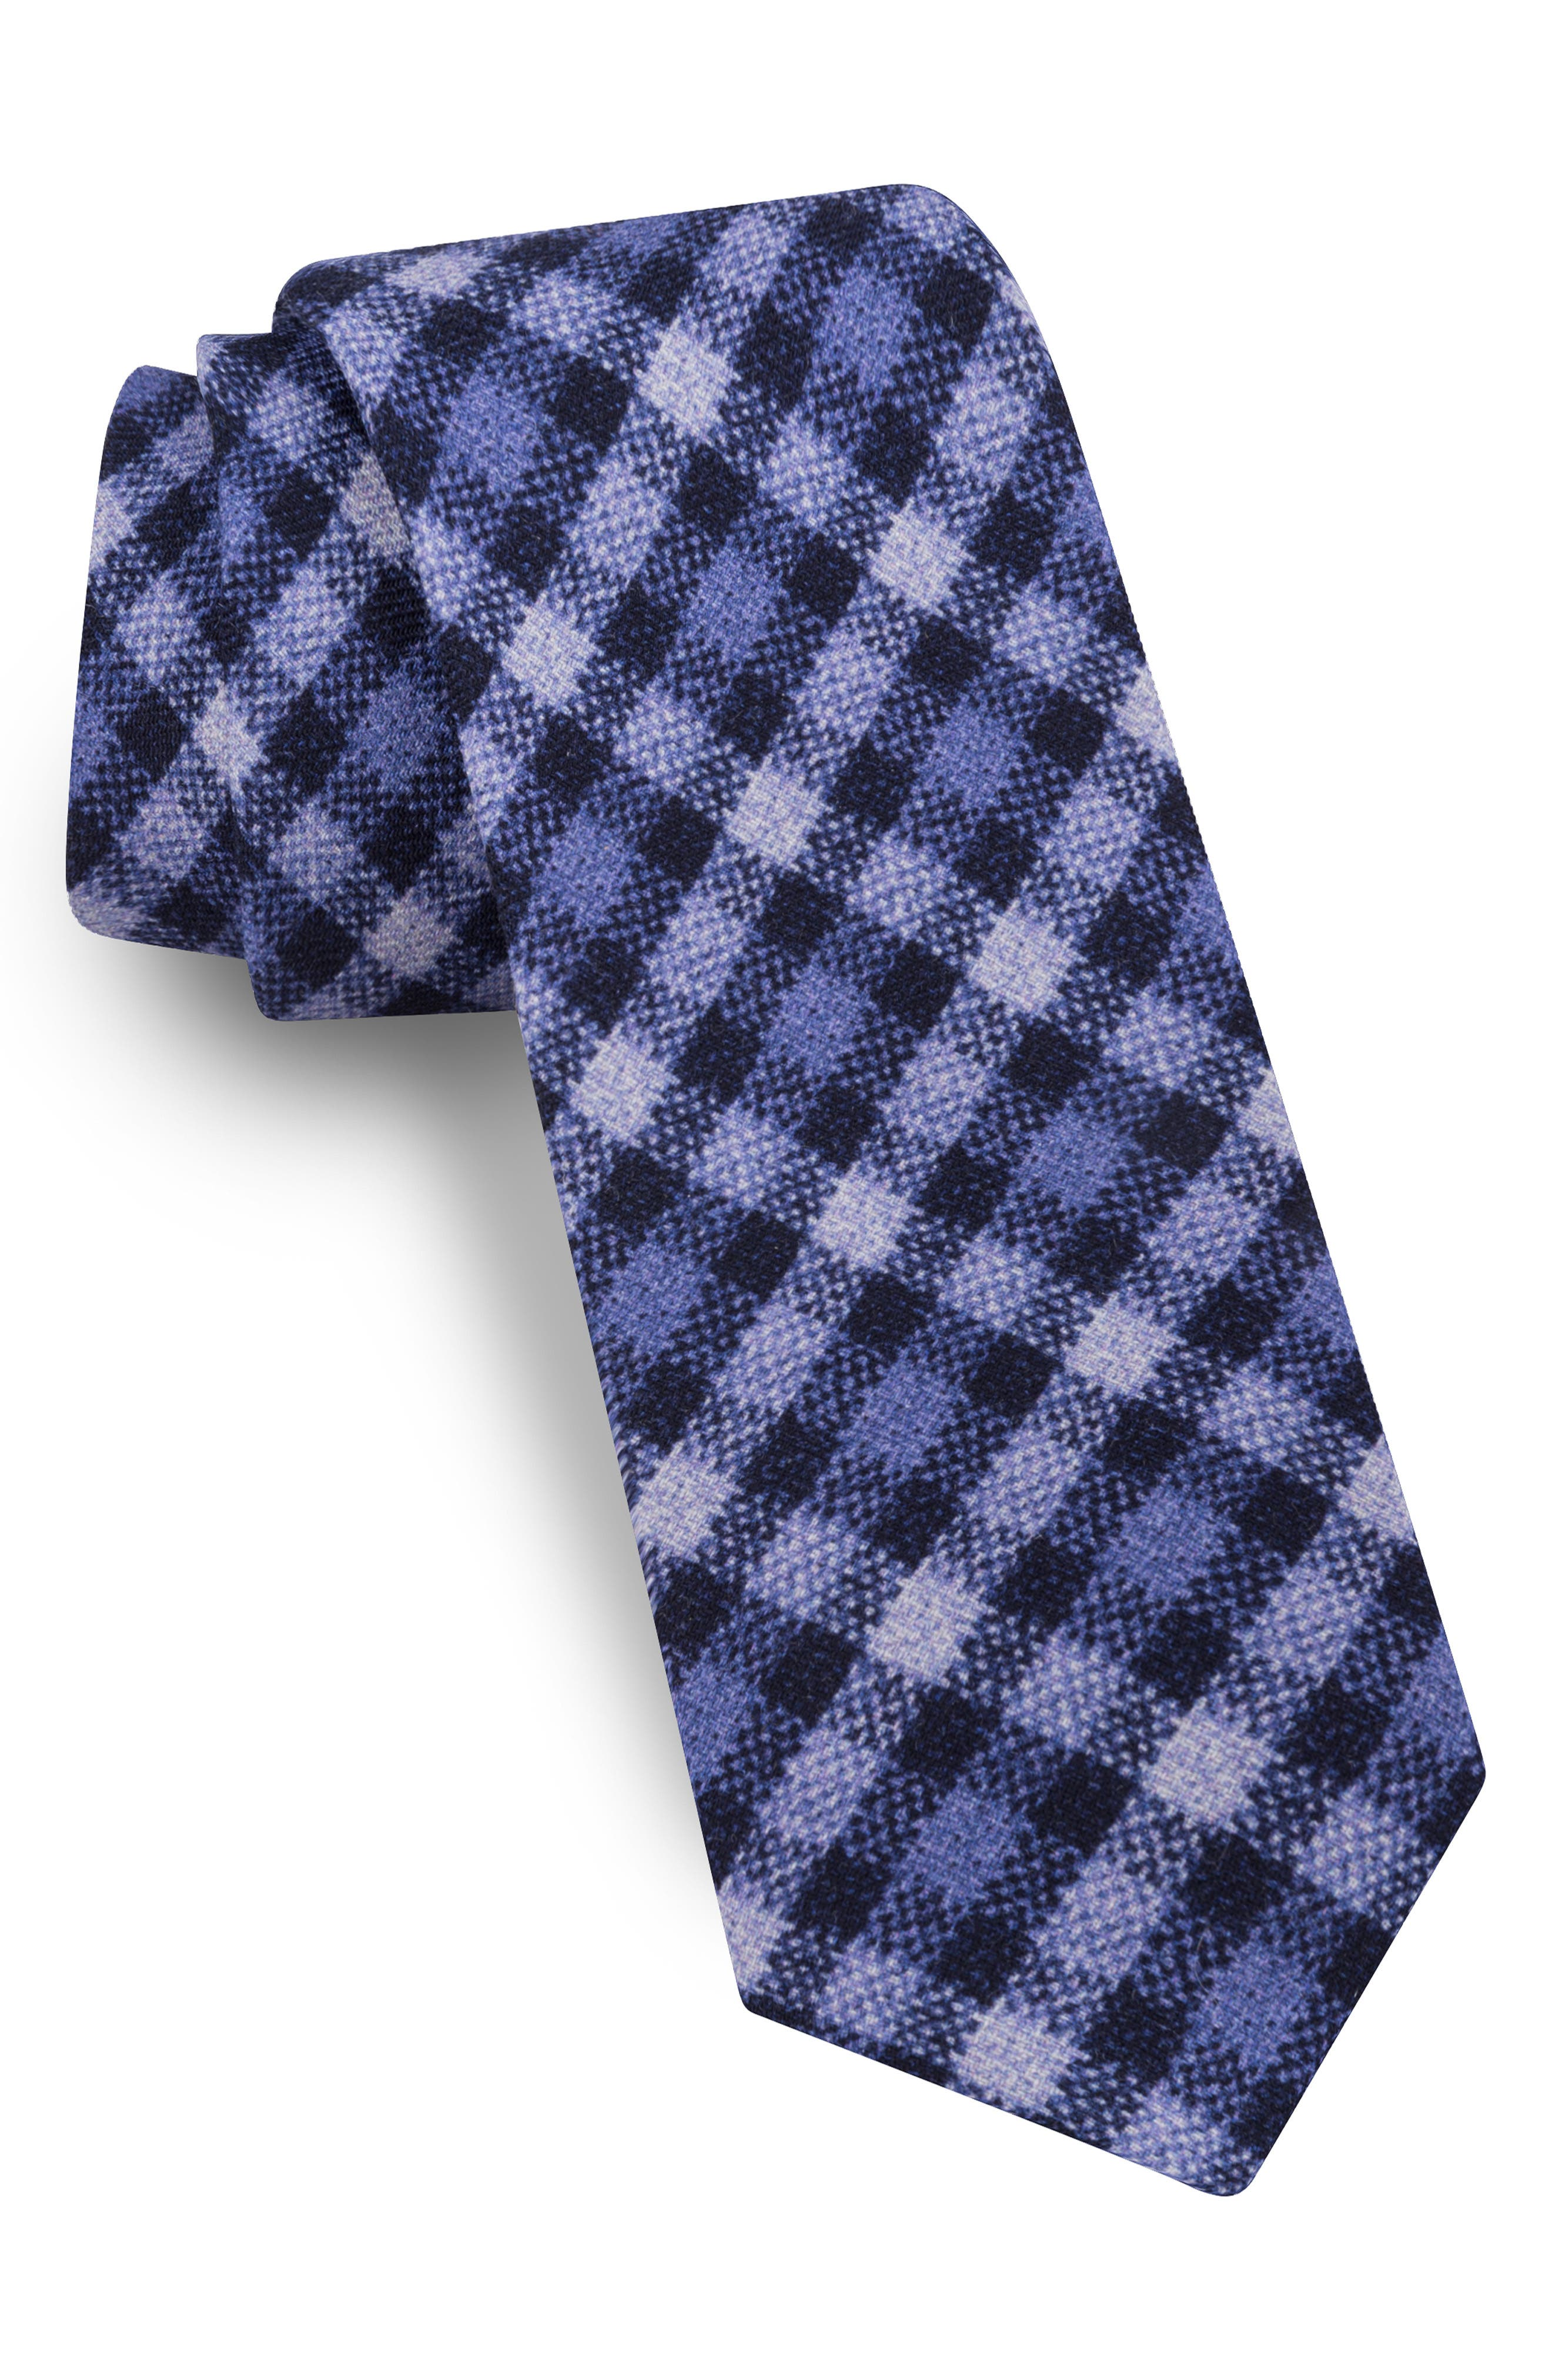 TED BAKER LONDON Plaid Wool Tie, Main, color, NAVY